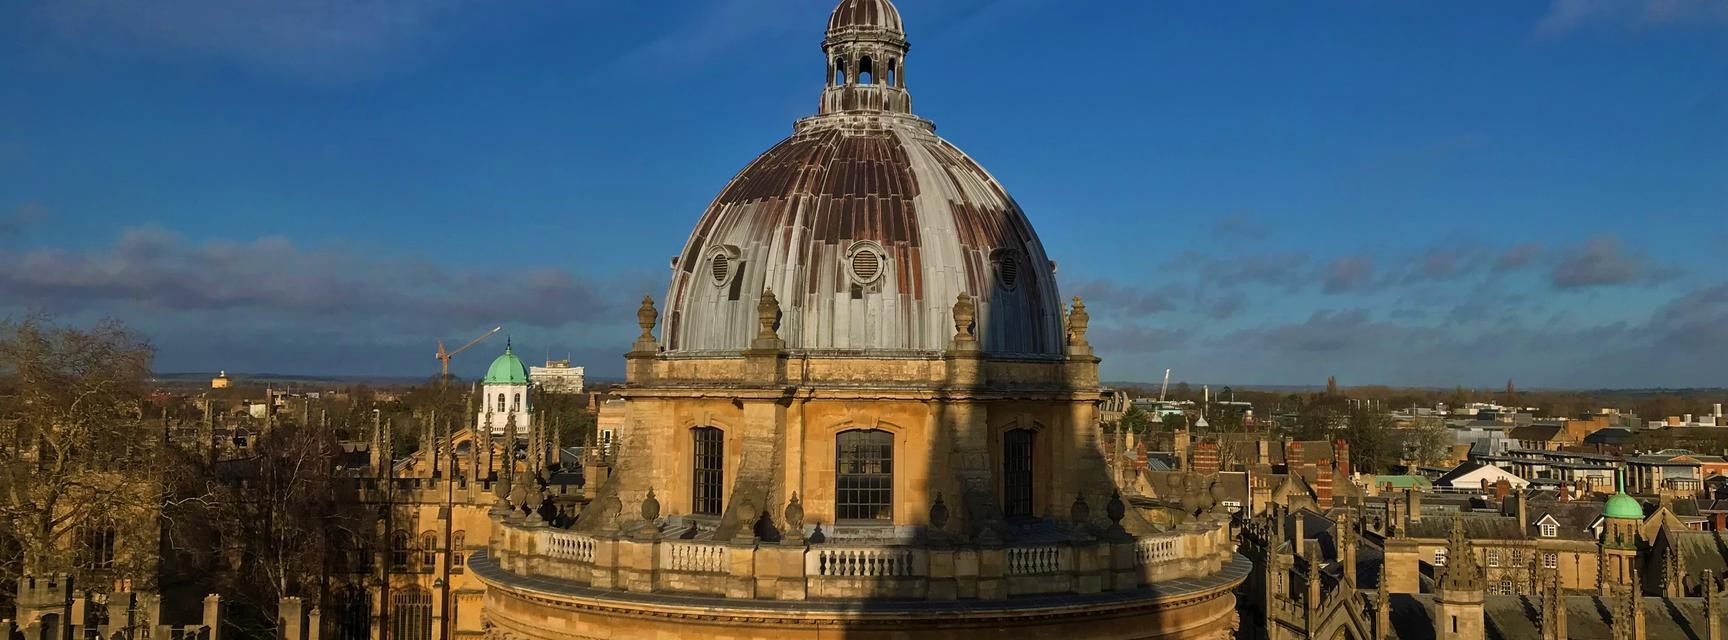 Photo of the Radcliffe Camera